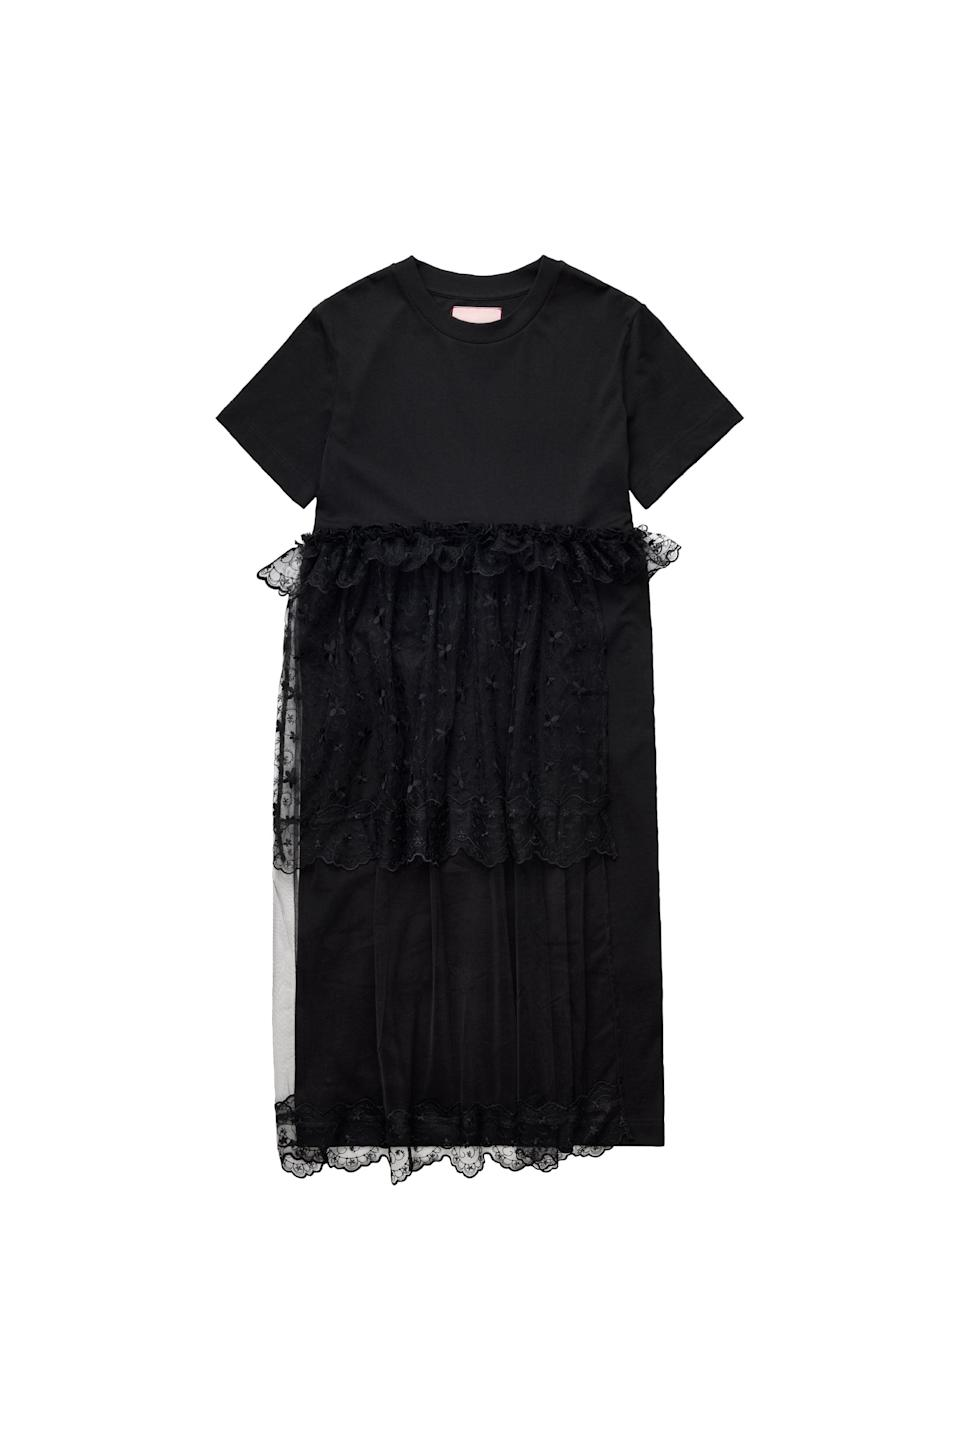 <p><span>Simone Rocha x H&amp;M Tulle-Detail T-Shirt Dress</span> ($99).</p>